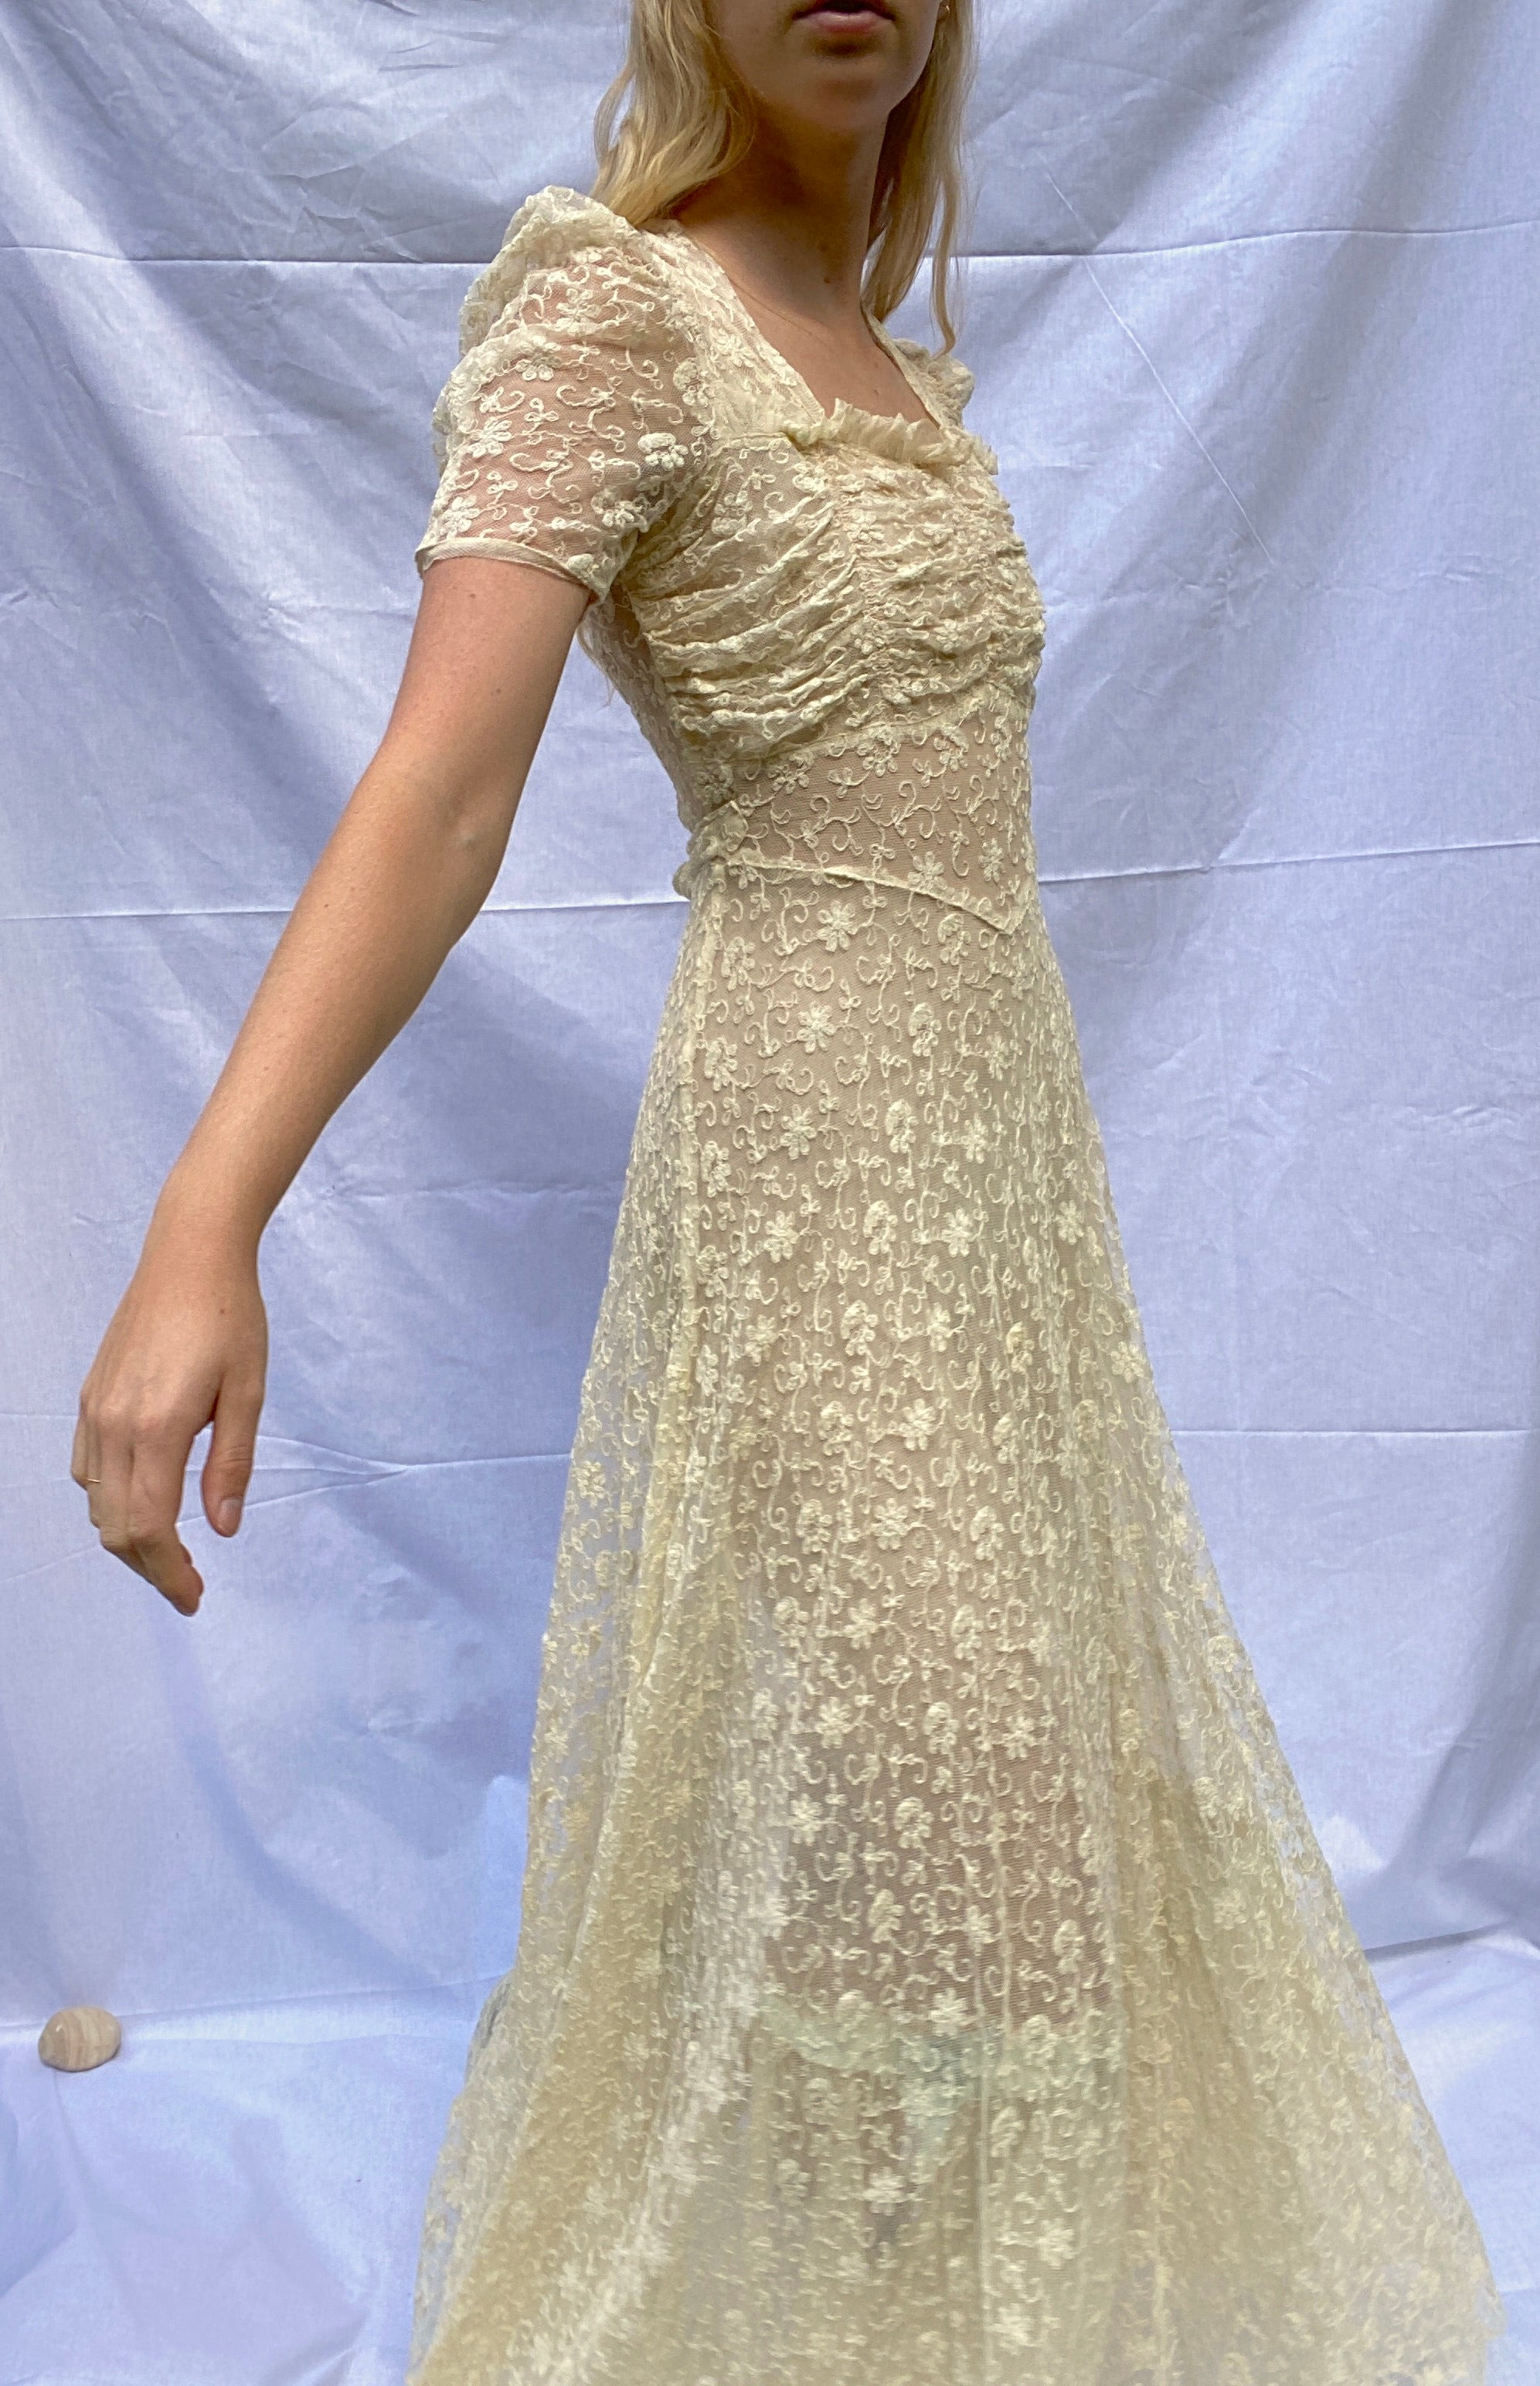 1940's Embroidered Cream Cotton Net Summer Party Dress